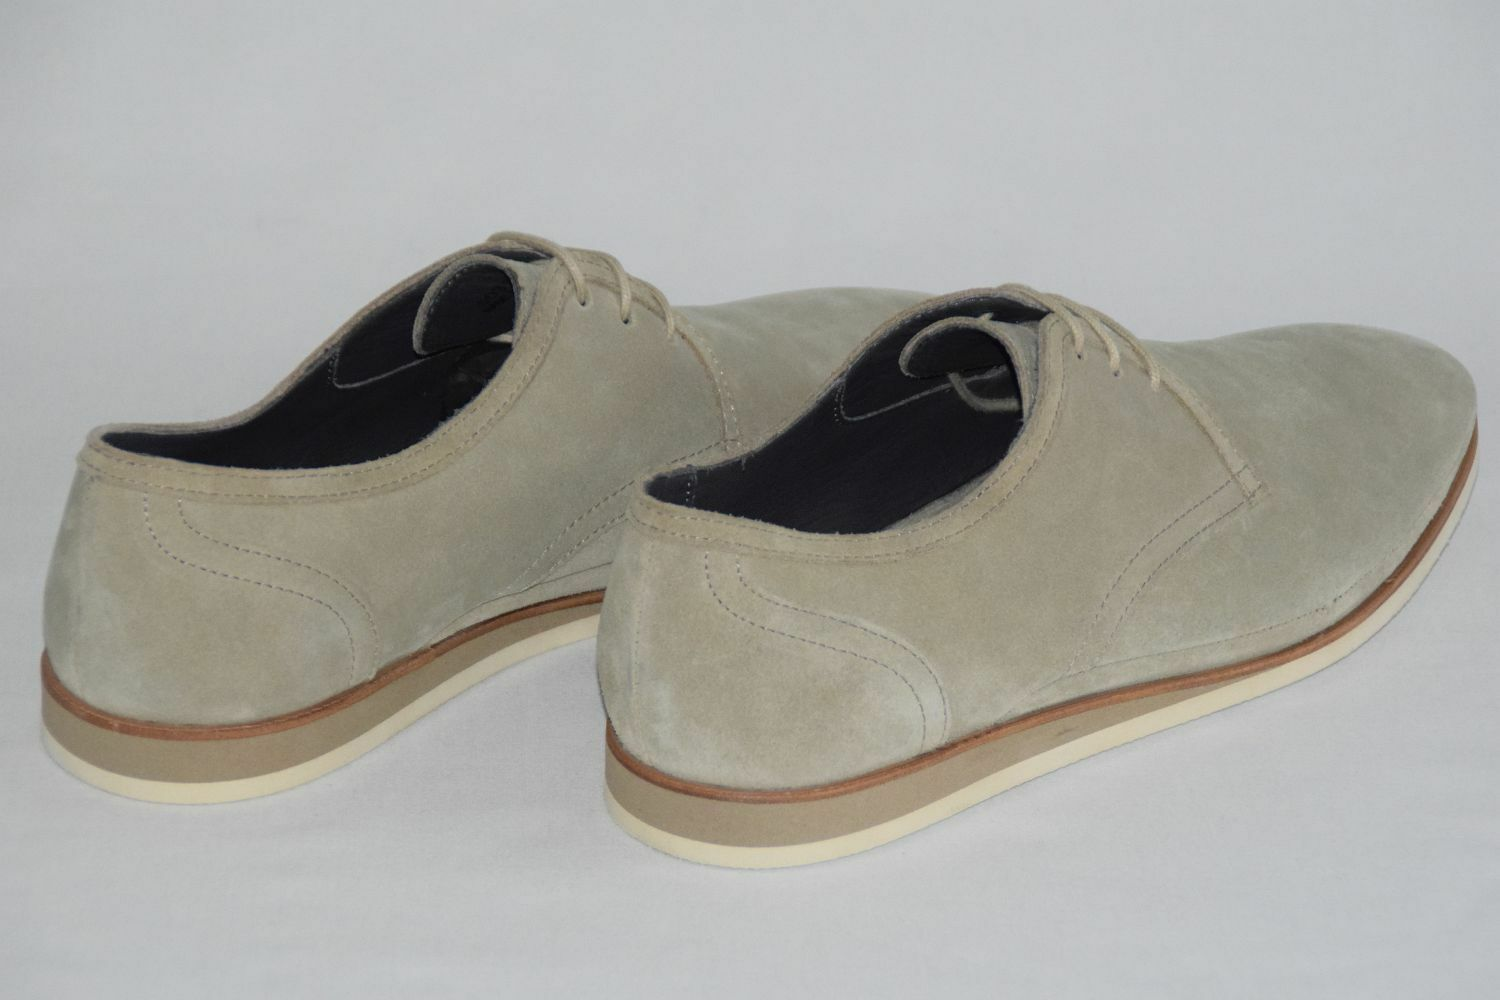 HUGO BOSS SCHUHE, Mod: Ecleder, Gr. Gr. Gr. EU 44,5 / UK 10,5 / US 11,5, Light Beige 854e12